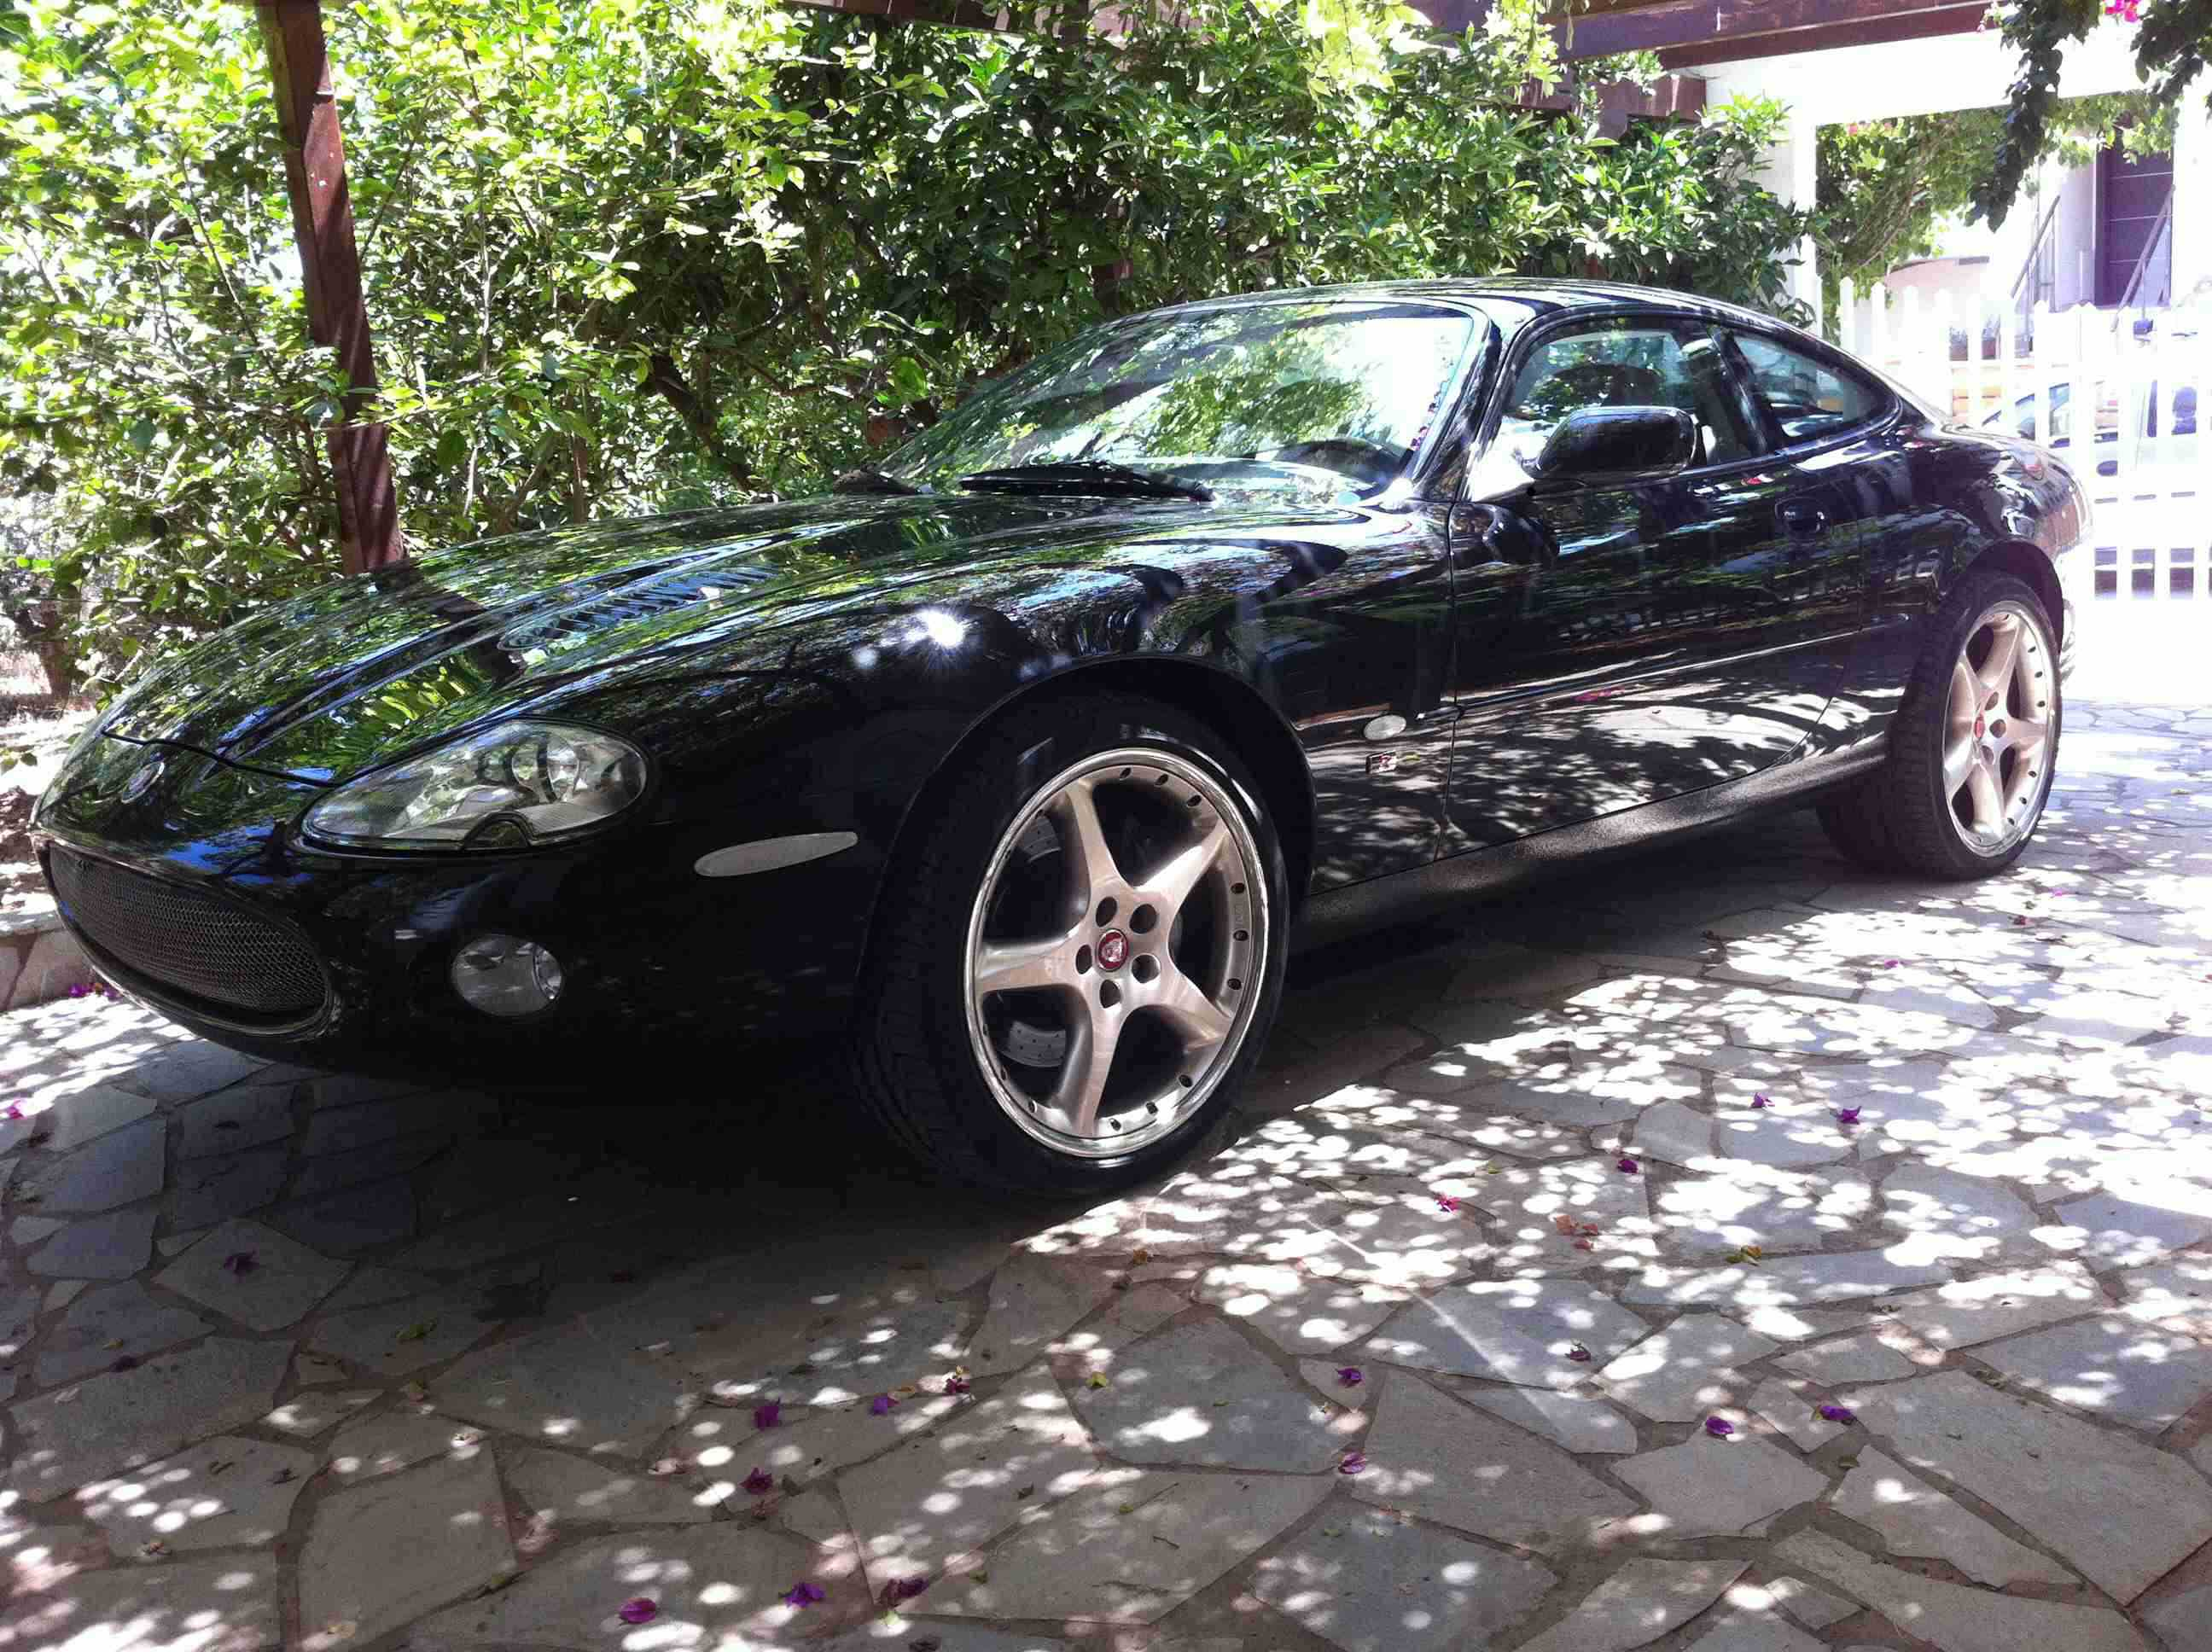 Xk8 Xkr Parts Gallery Dimitris D S Fantastic Looking Xkr Based In